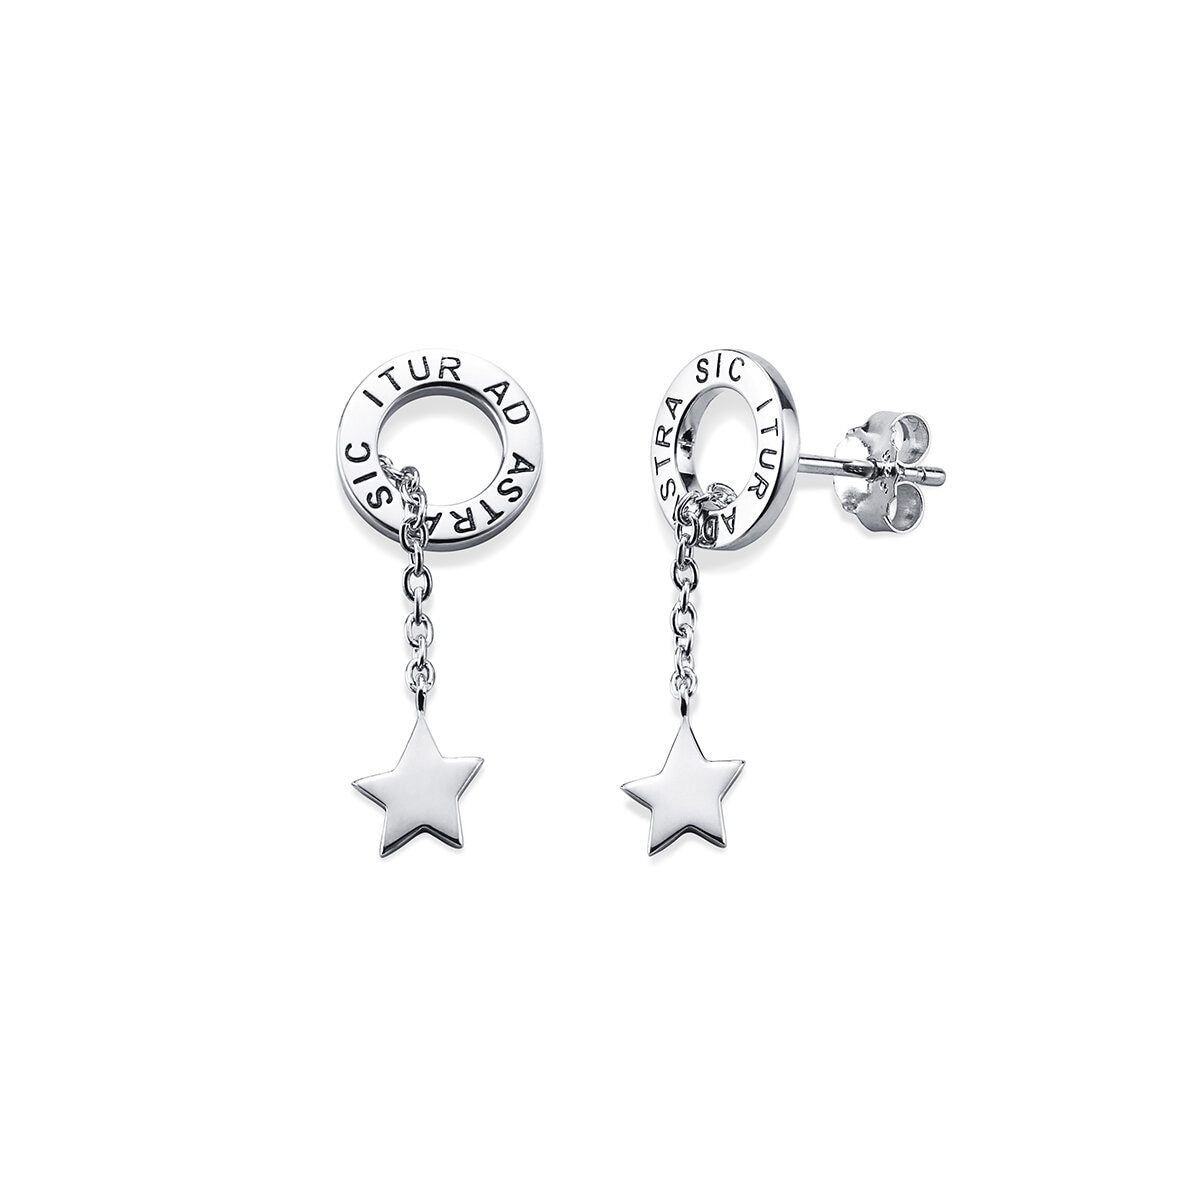 Efva_Attling_Astra_Fall_Earrings_12-100-00337(2)_Hos_Jarl_Sandin